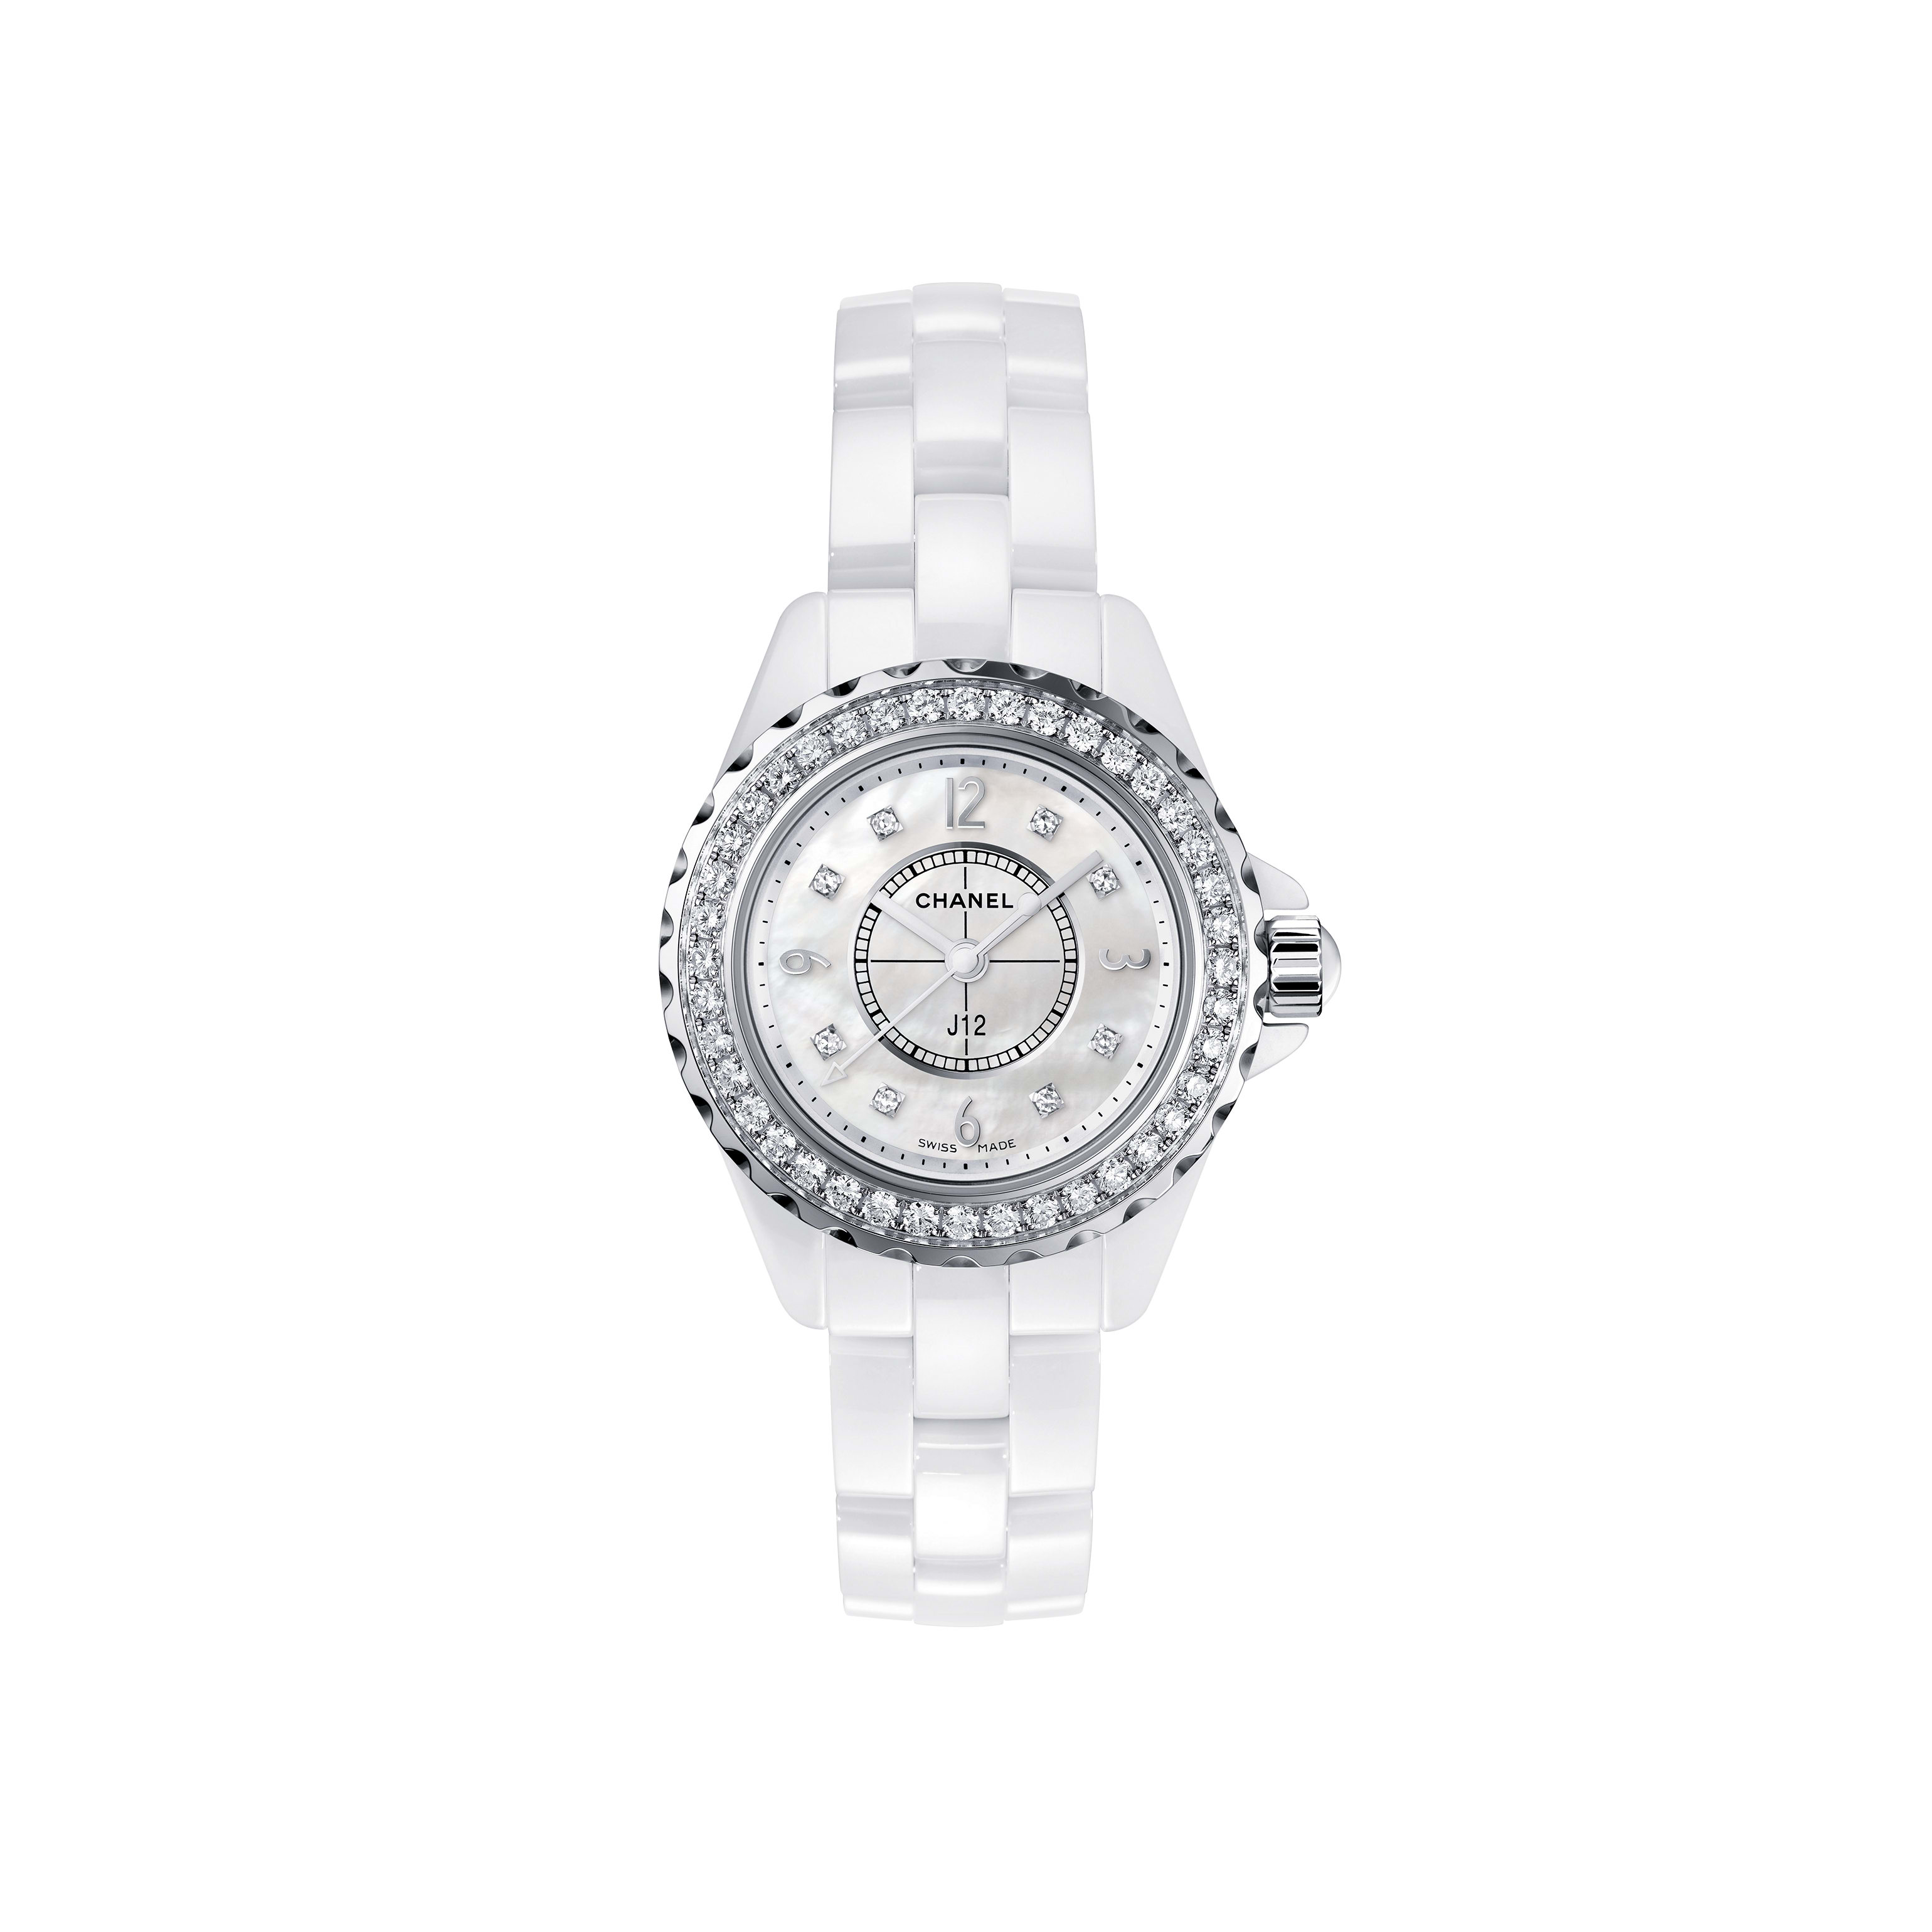 J12 Watch, 29 mm - White highly resistant ceramic and steel, brilliant-cut diamond bezel and indicators, white mother-of-pearl dial - CHANEL - Default view - see standard sized version